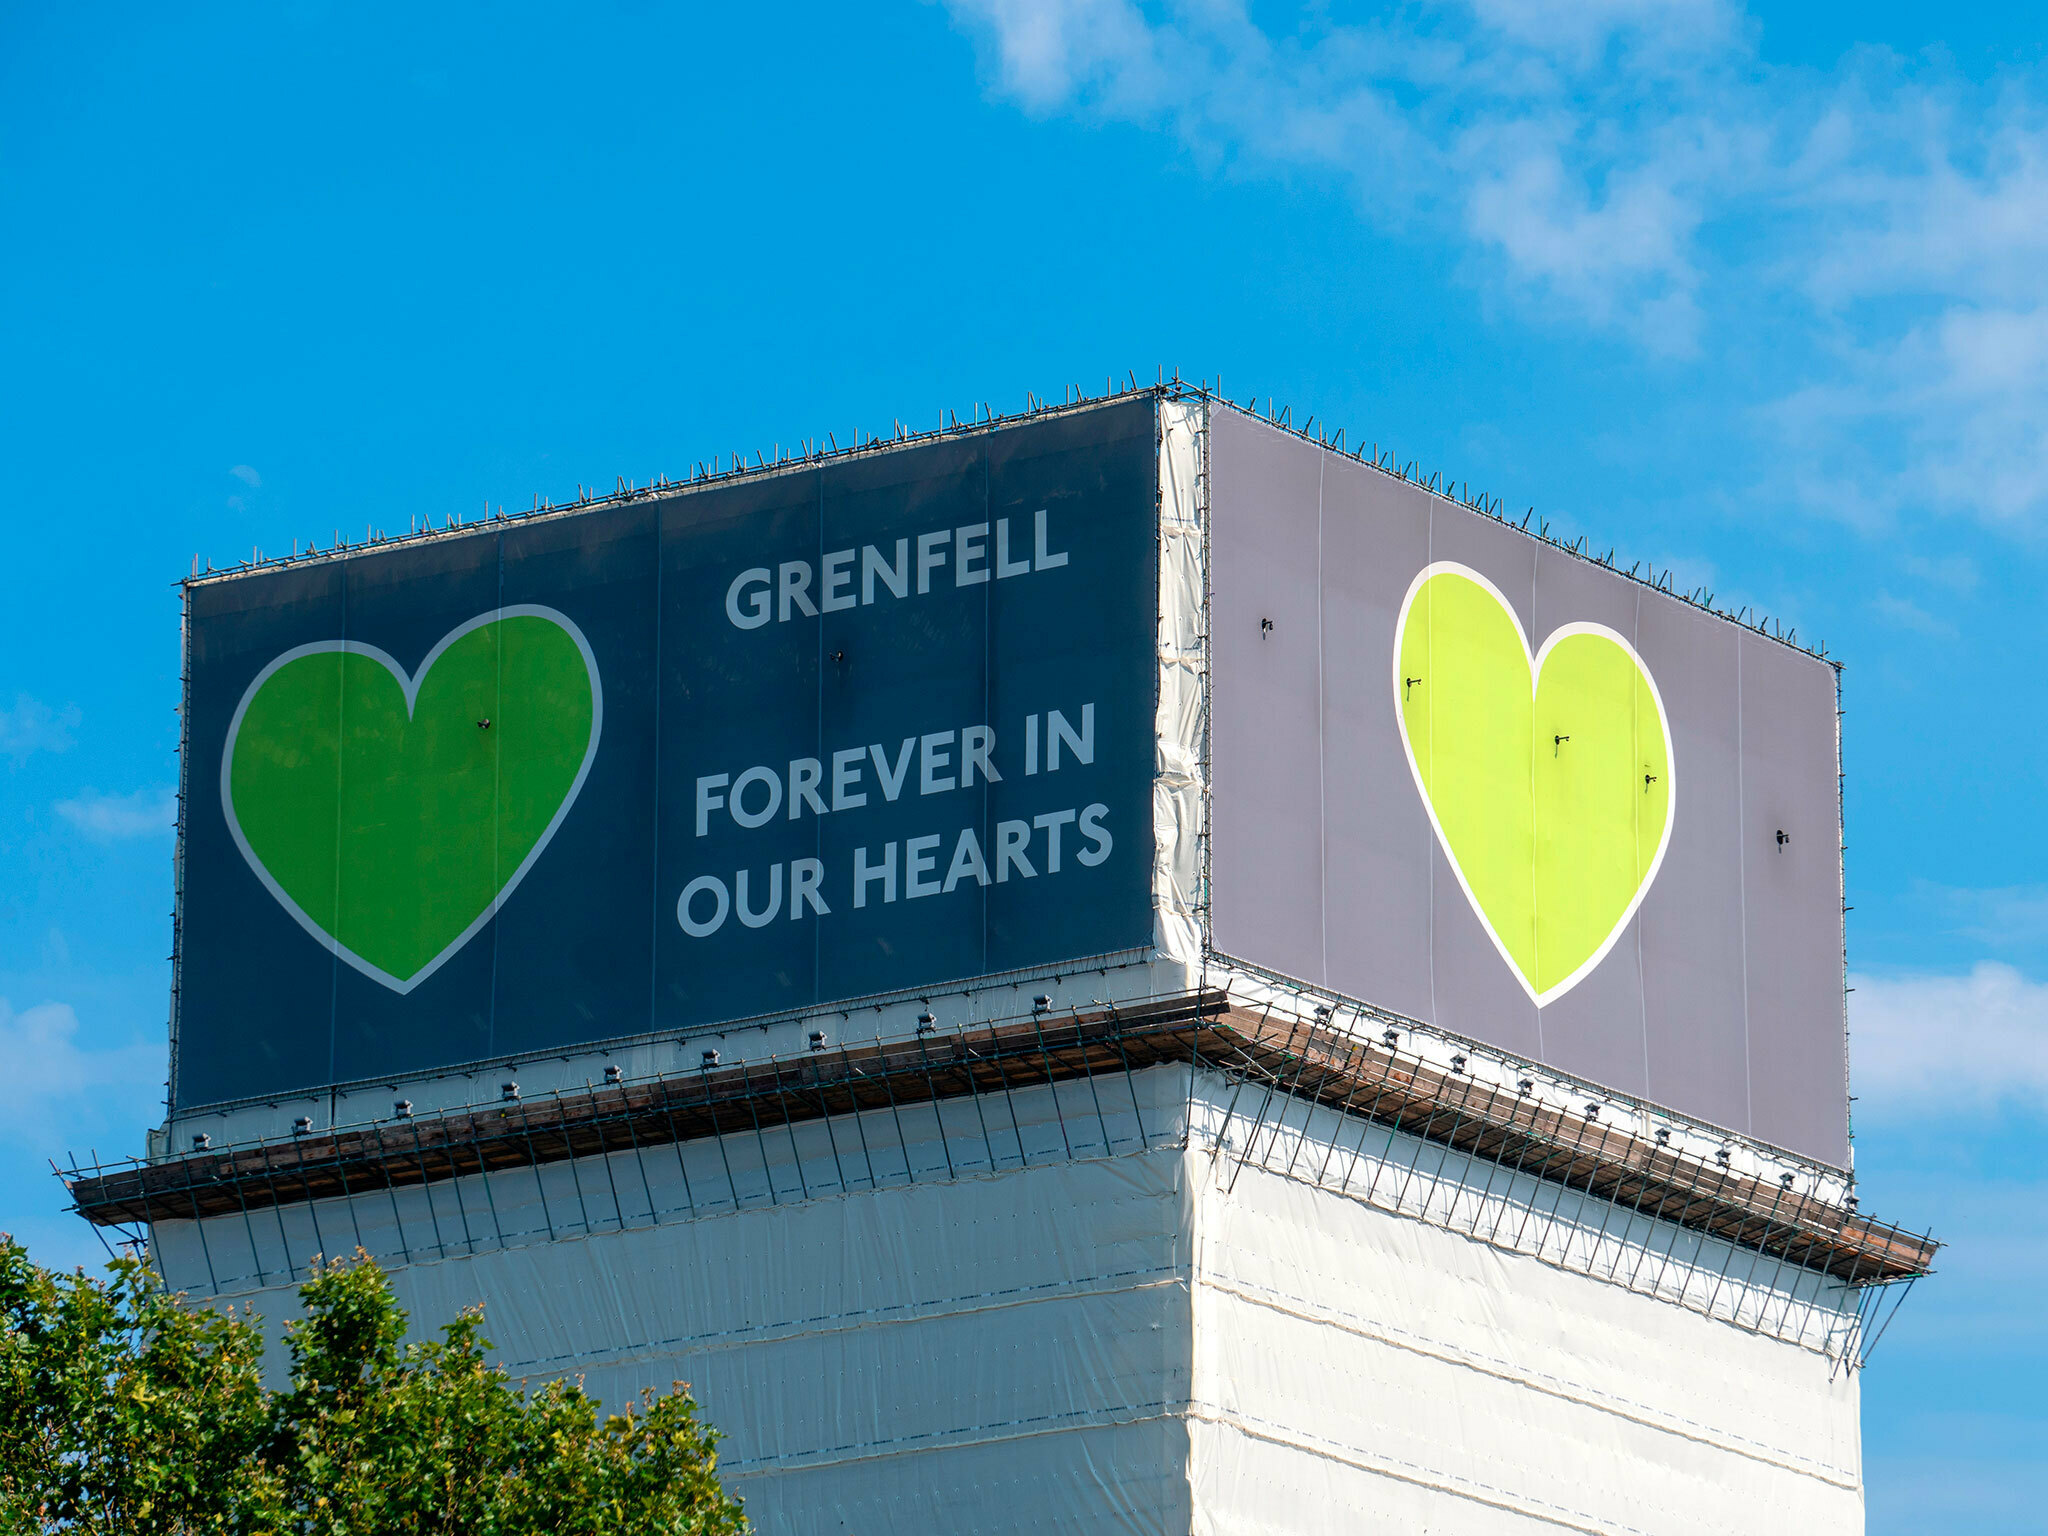 Adele praises the resilience of Grenfell survivors in Vogue - Time Out London